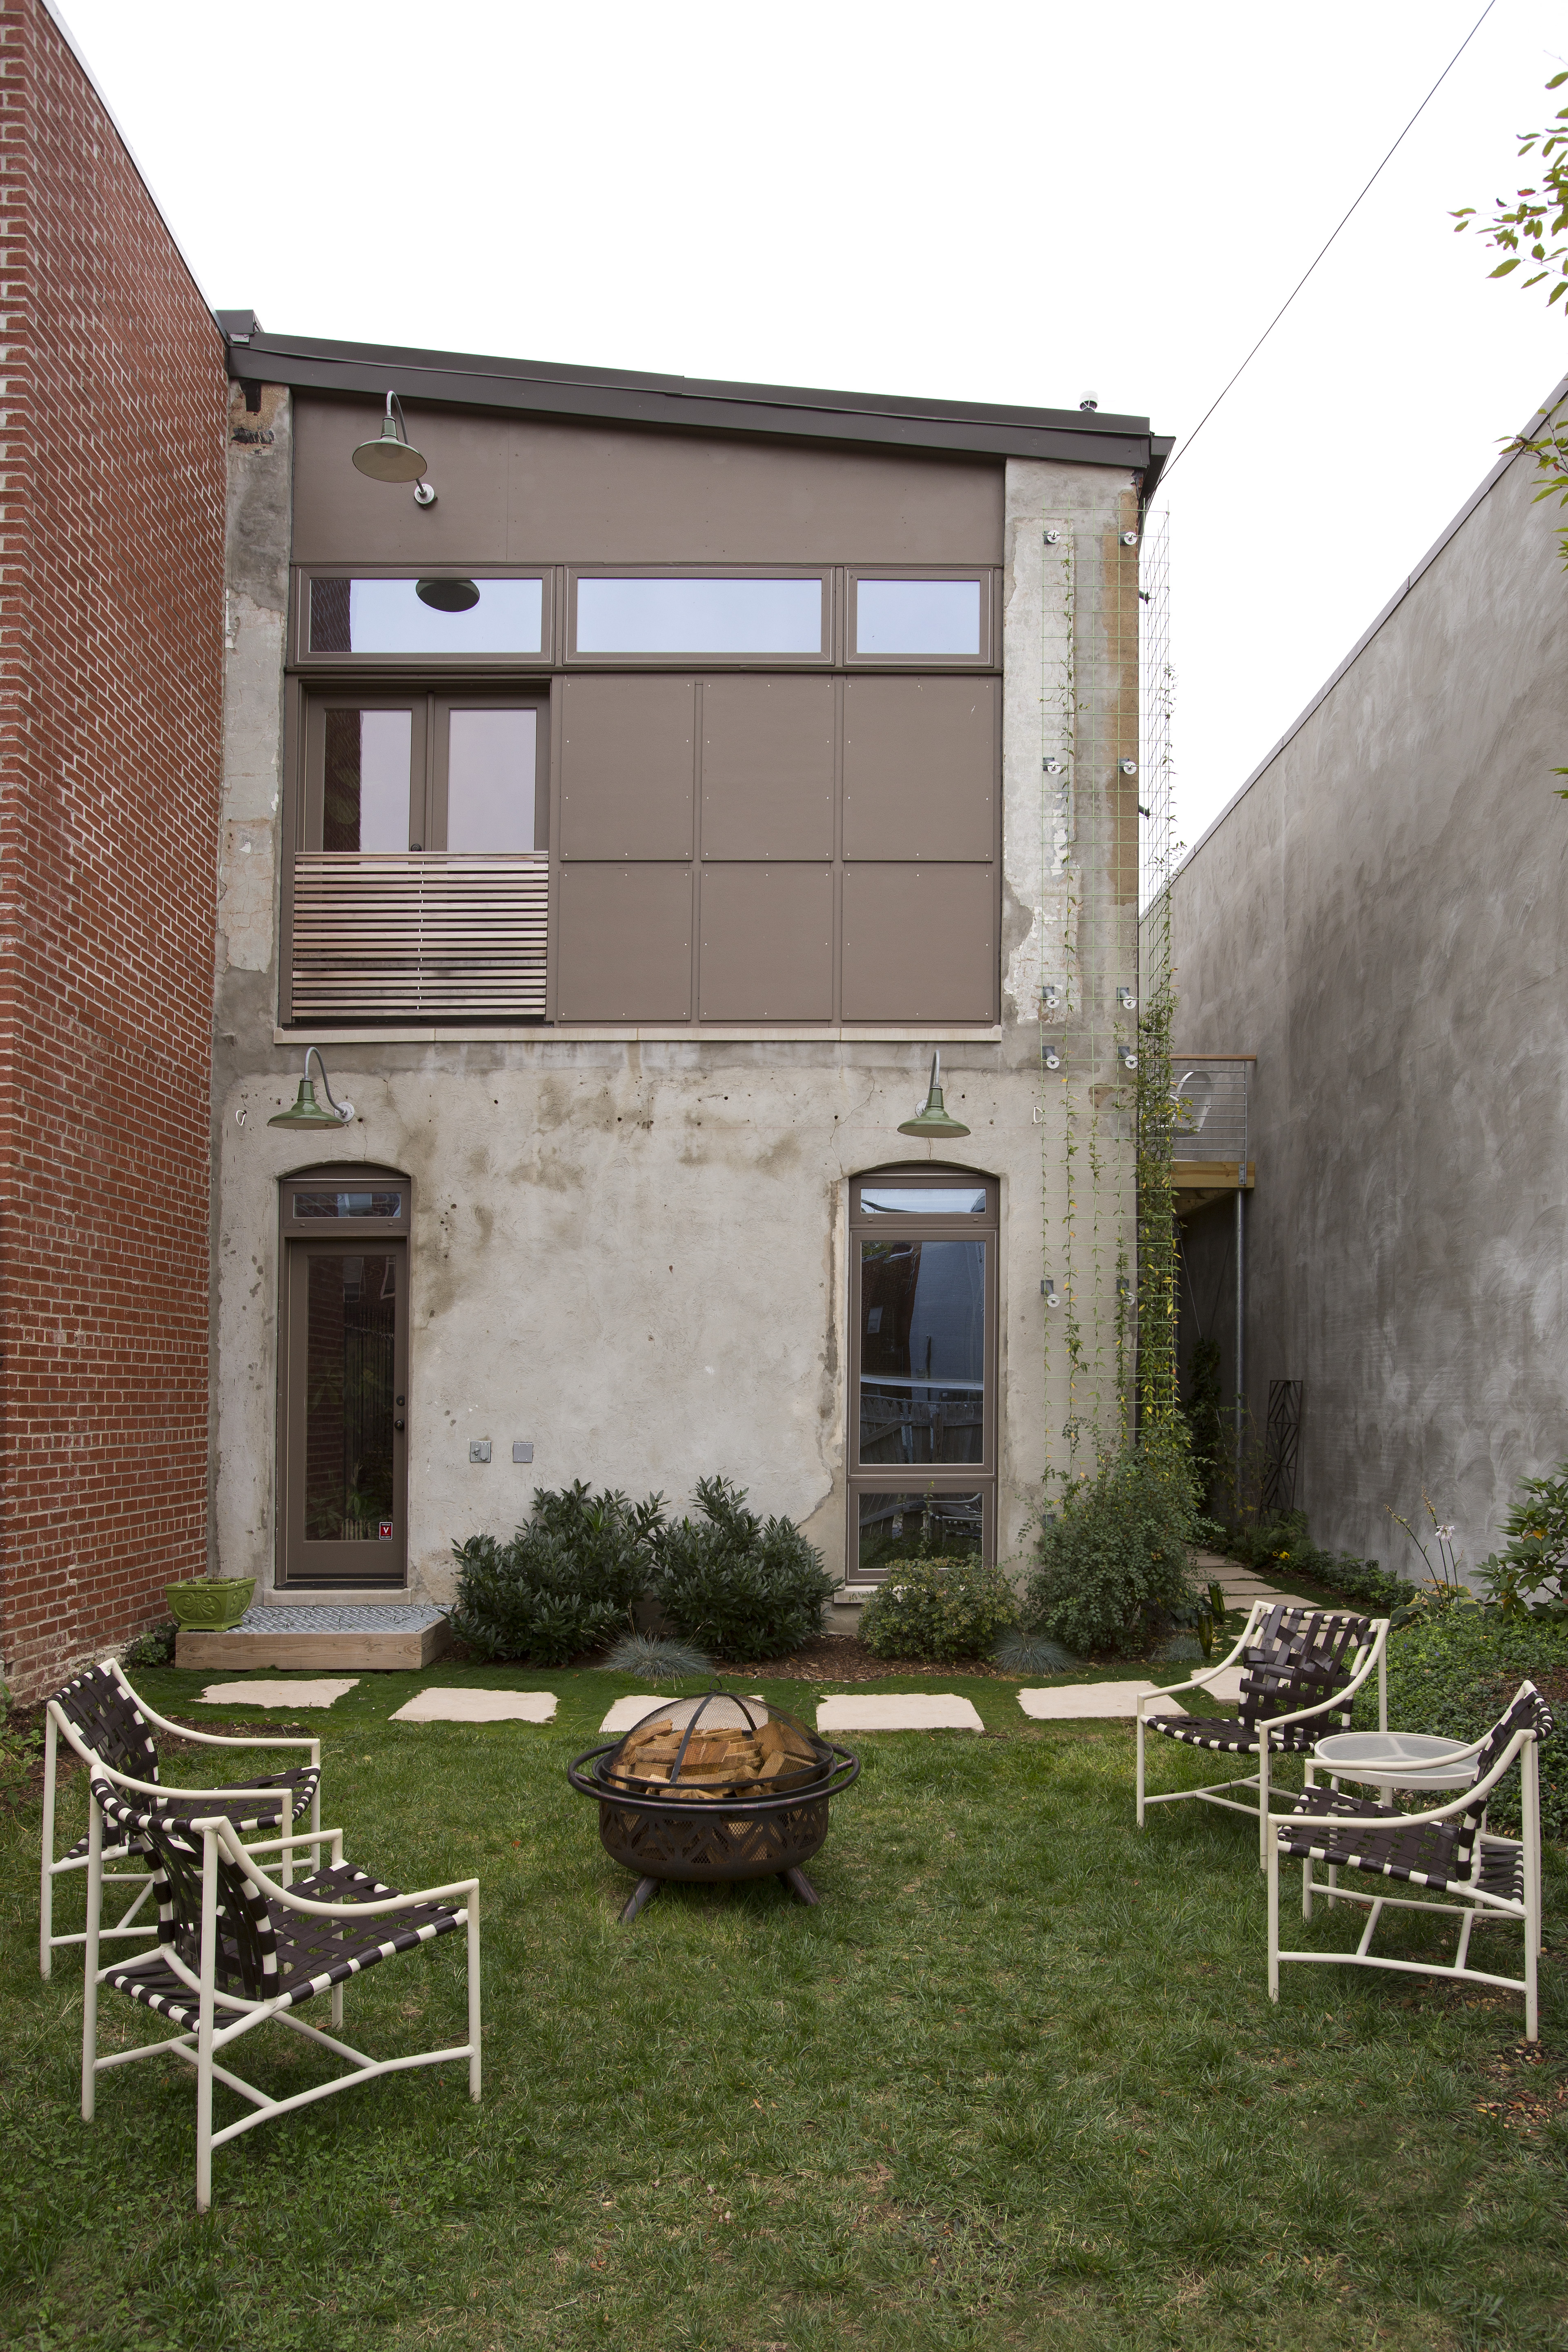 The small backyard has a metal firepit and several lawn chairs. The stone path leads around the back to another door. The outside of the building is concrete.